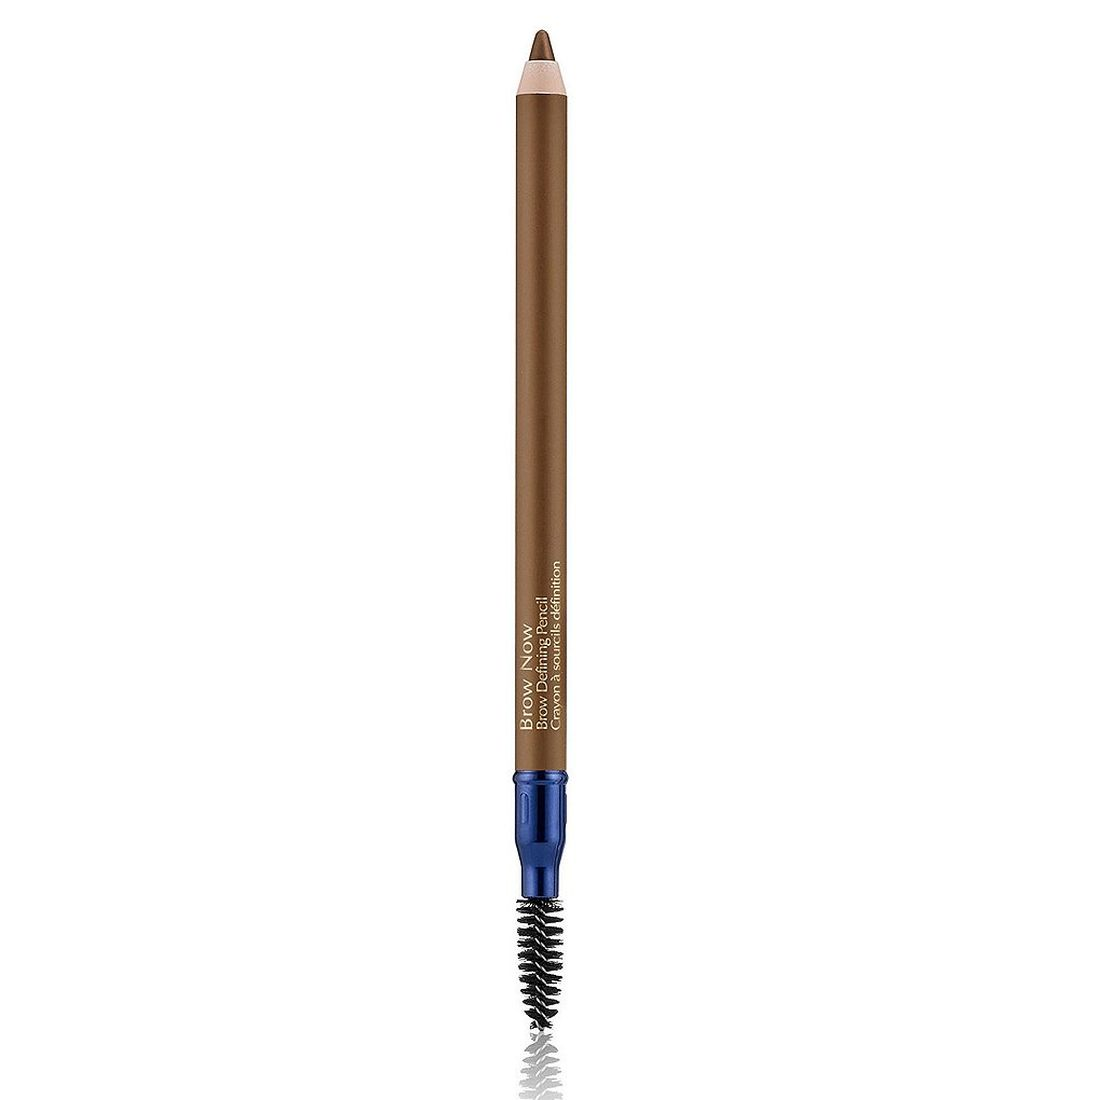 Estée Lauder Brow Now Brow Defining Pencil 03 Rich Brown 03 Rich Brown